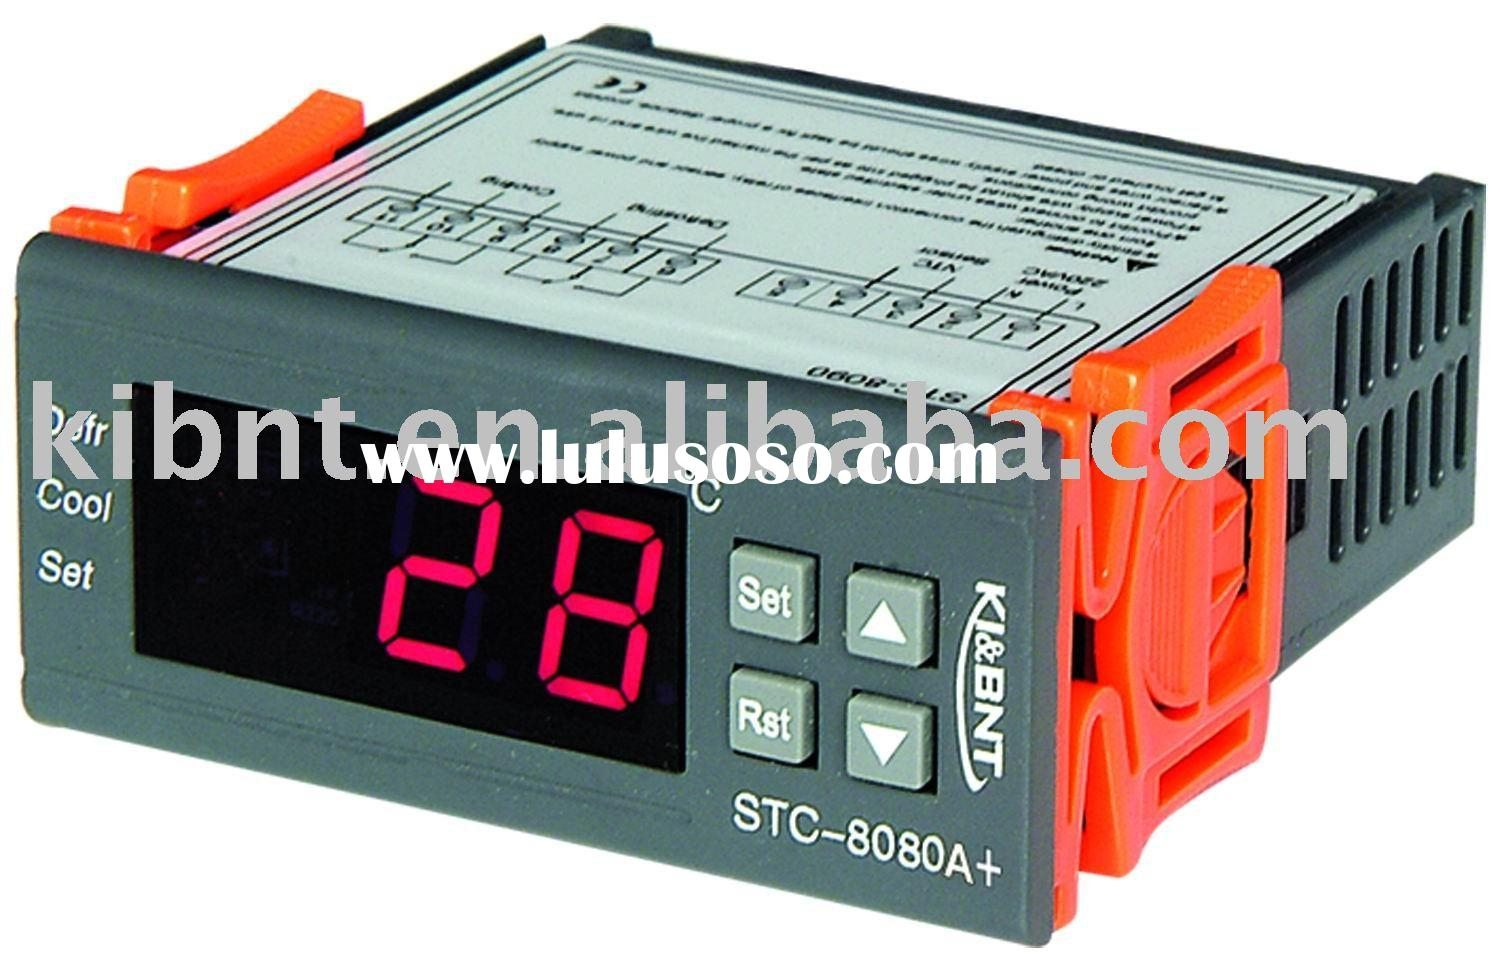 controller stc 1000 temperature controller stc 1000 Manufacturers  #C73504